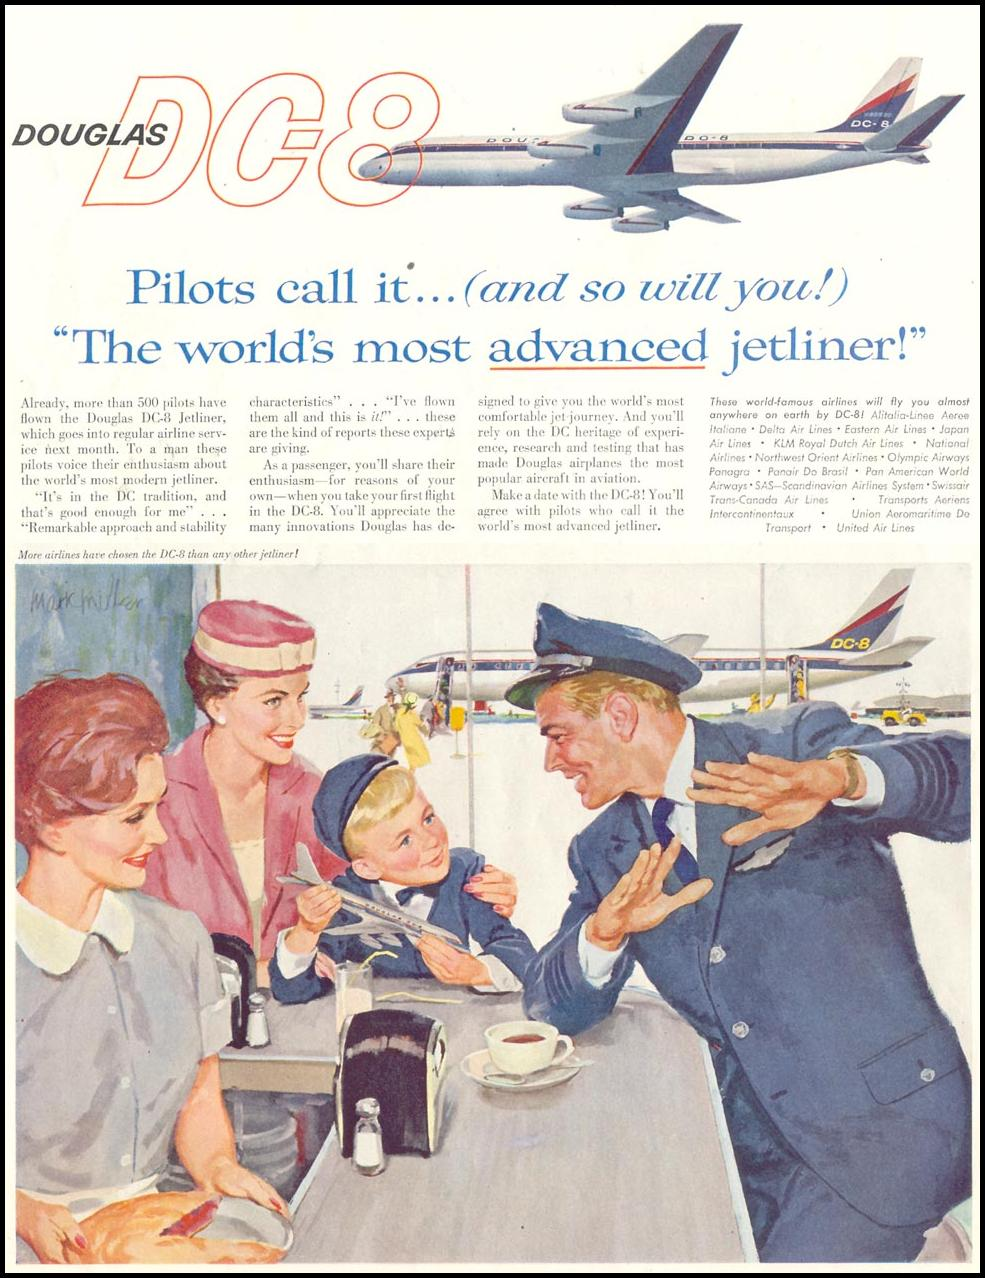 AIR TRAVEL SATURDAY EVENING POST 08/15/1959